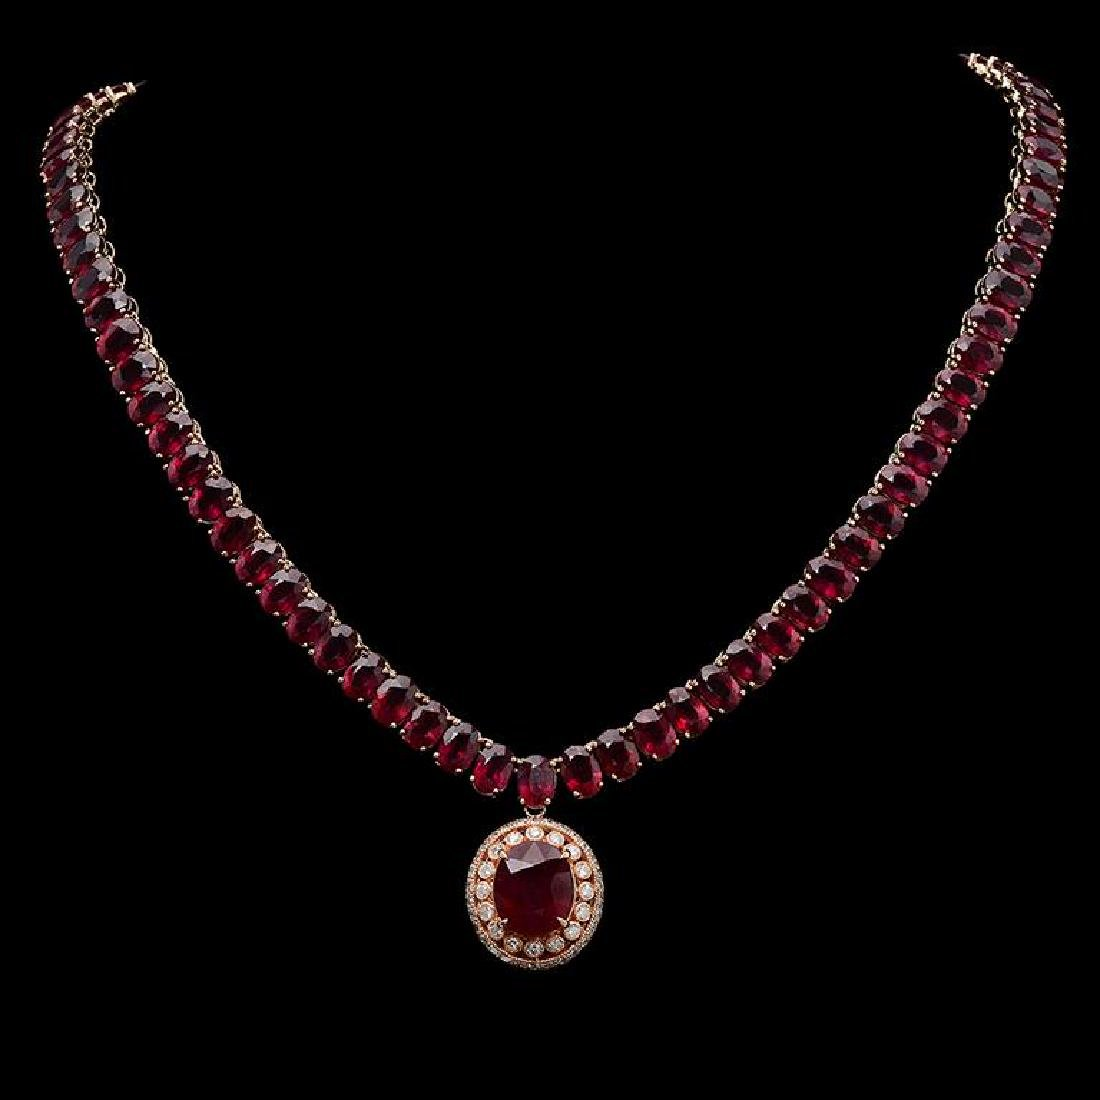 14K Gold 115.72ct Ruby & 1.35ct Diamond Necklace